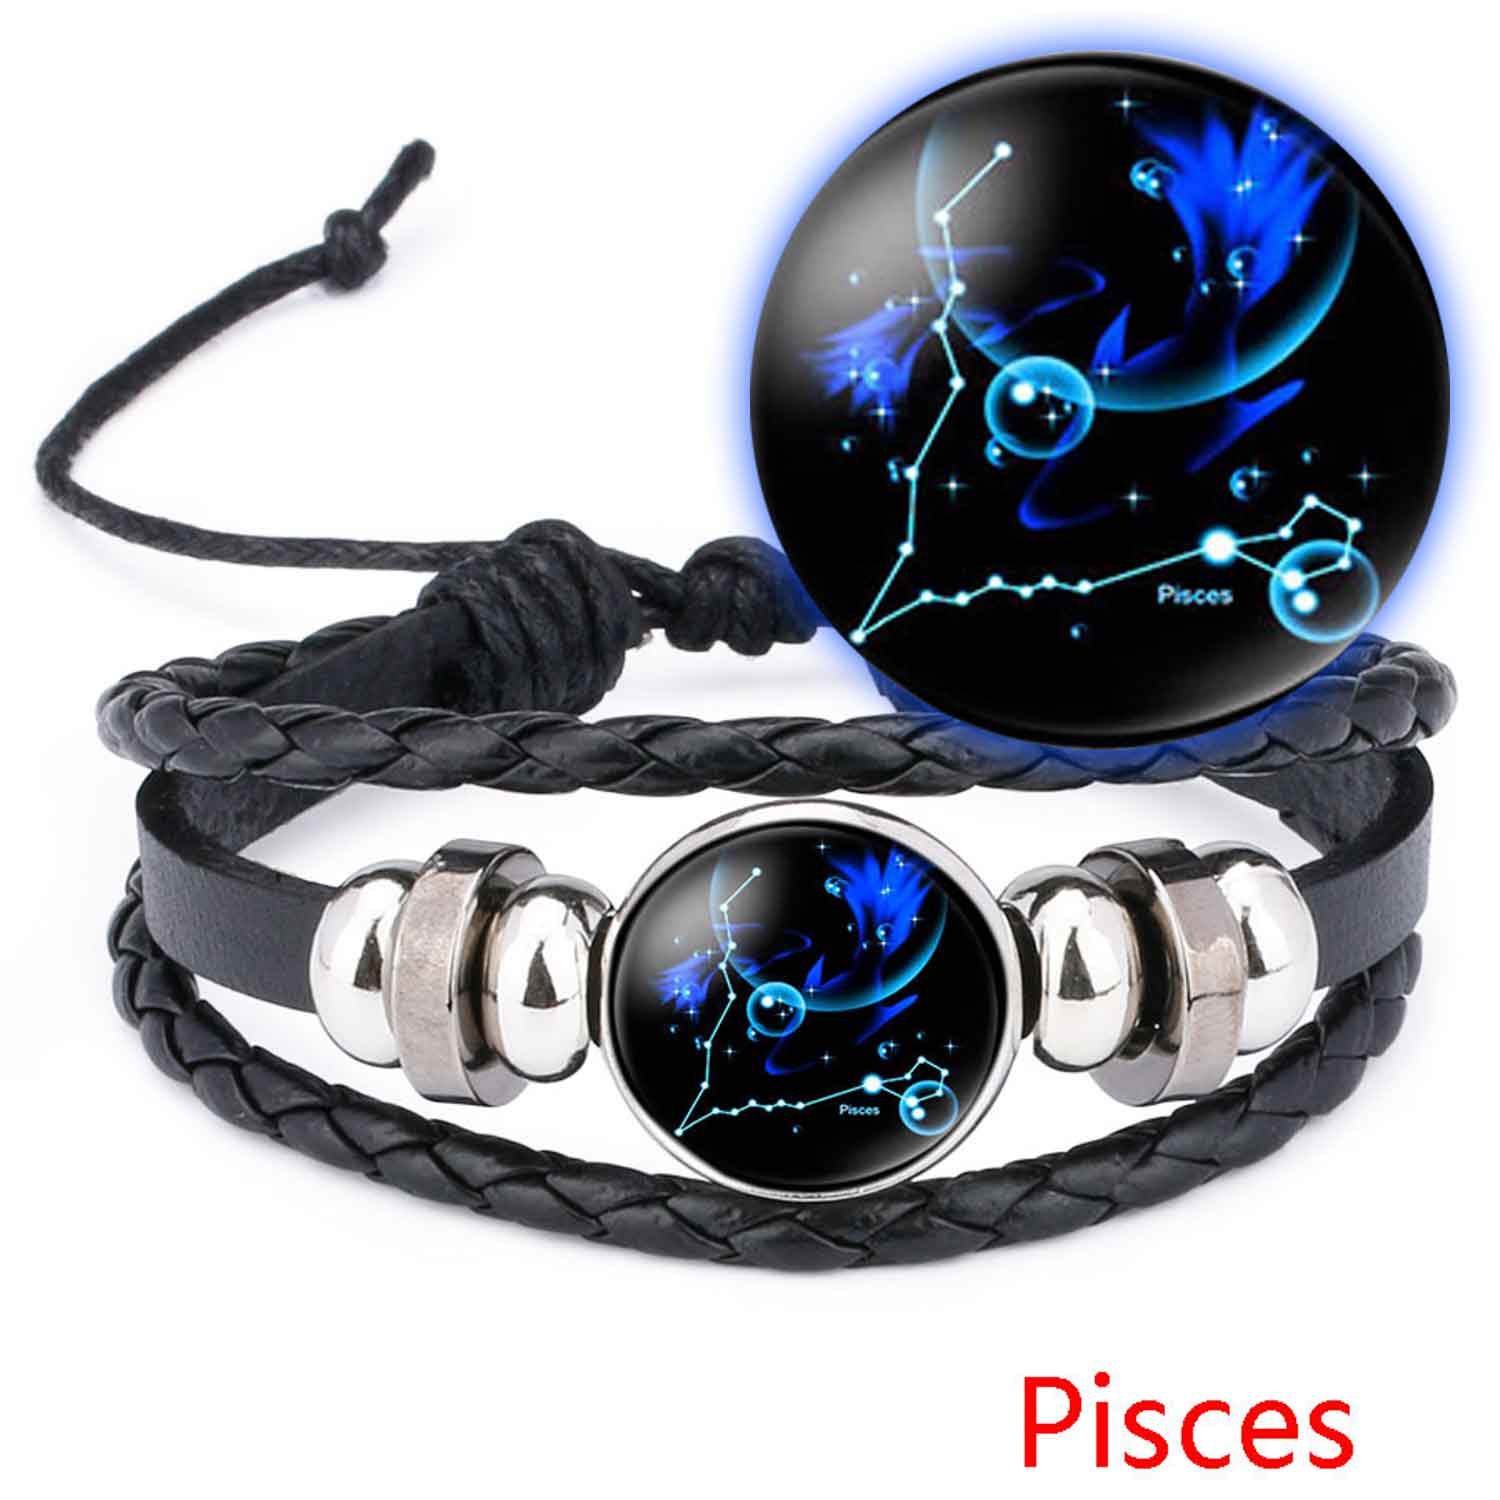 The Powerful Pisces Bracelet - GearBody